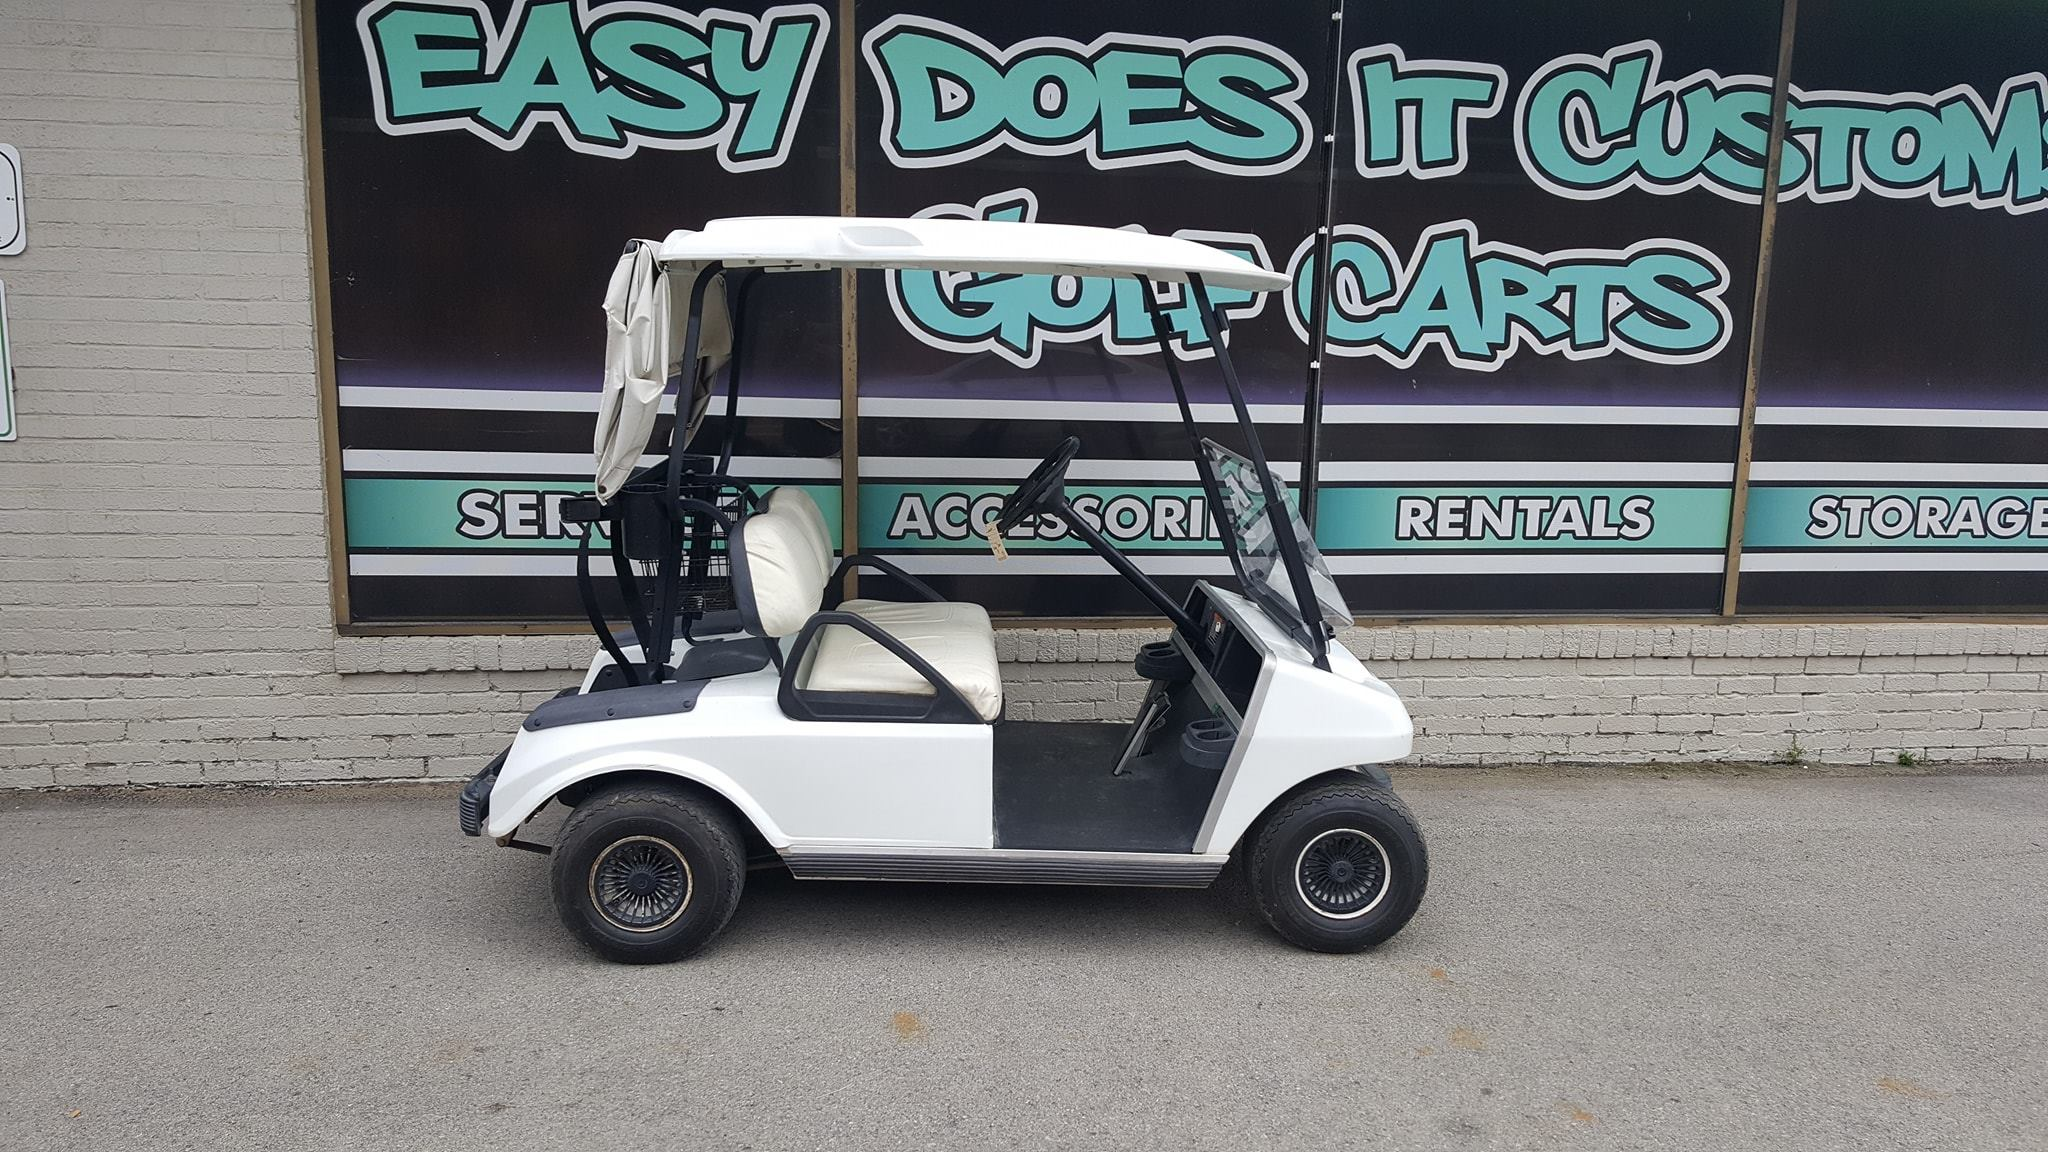 2000 Electric Club Car Ds Golf Cart Sold Easy Does It Customs Llc